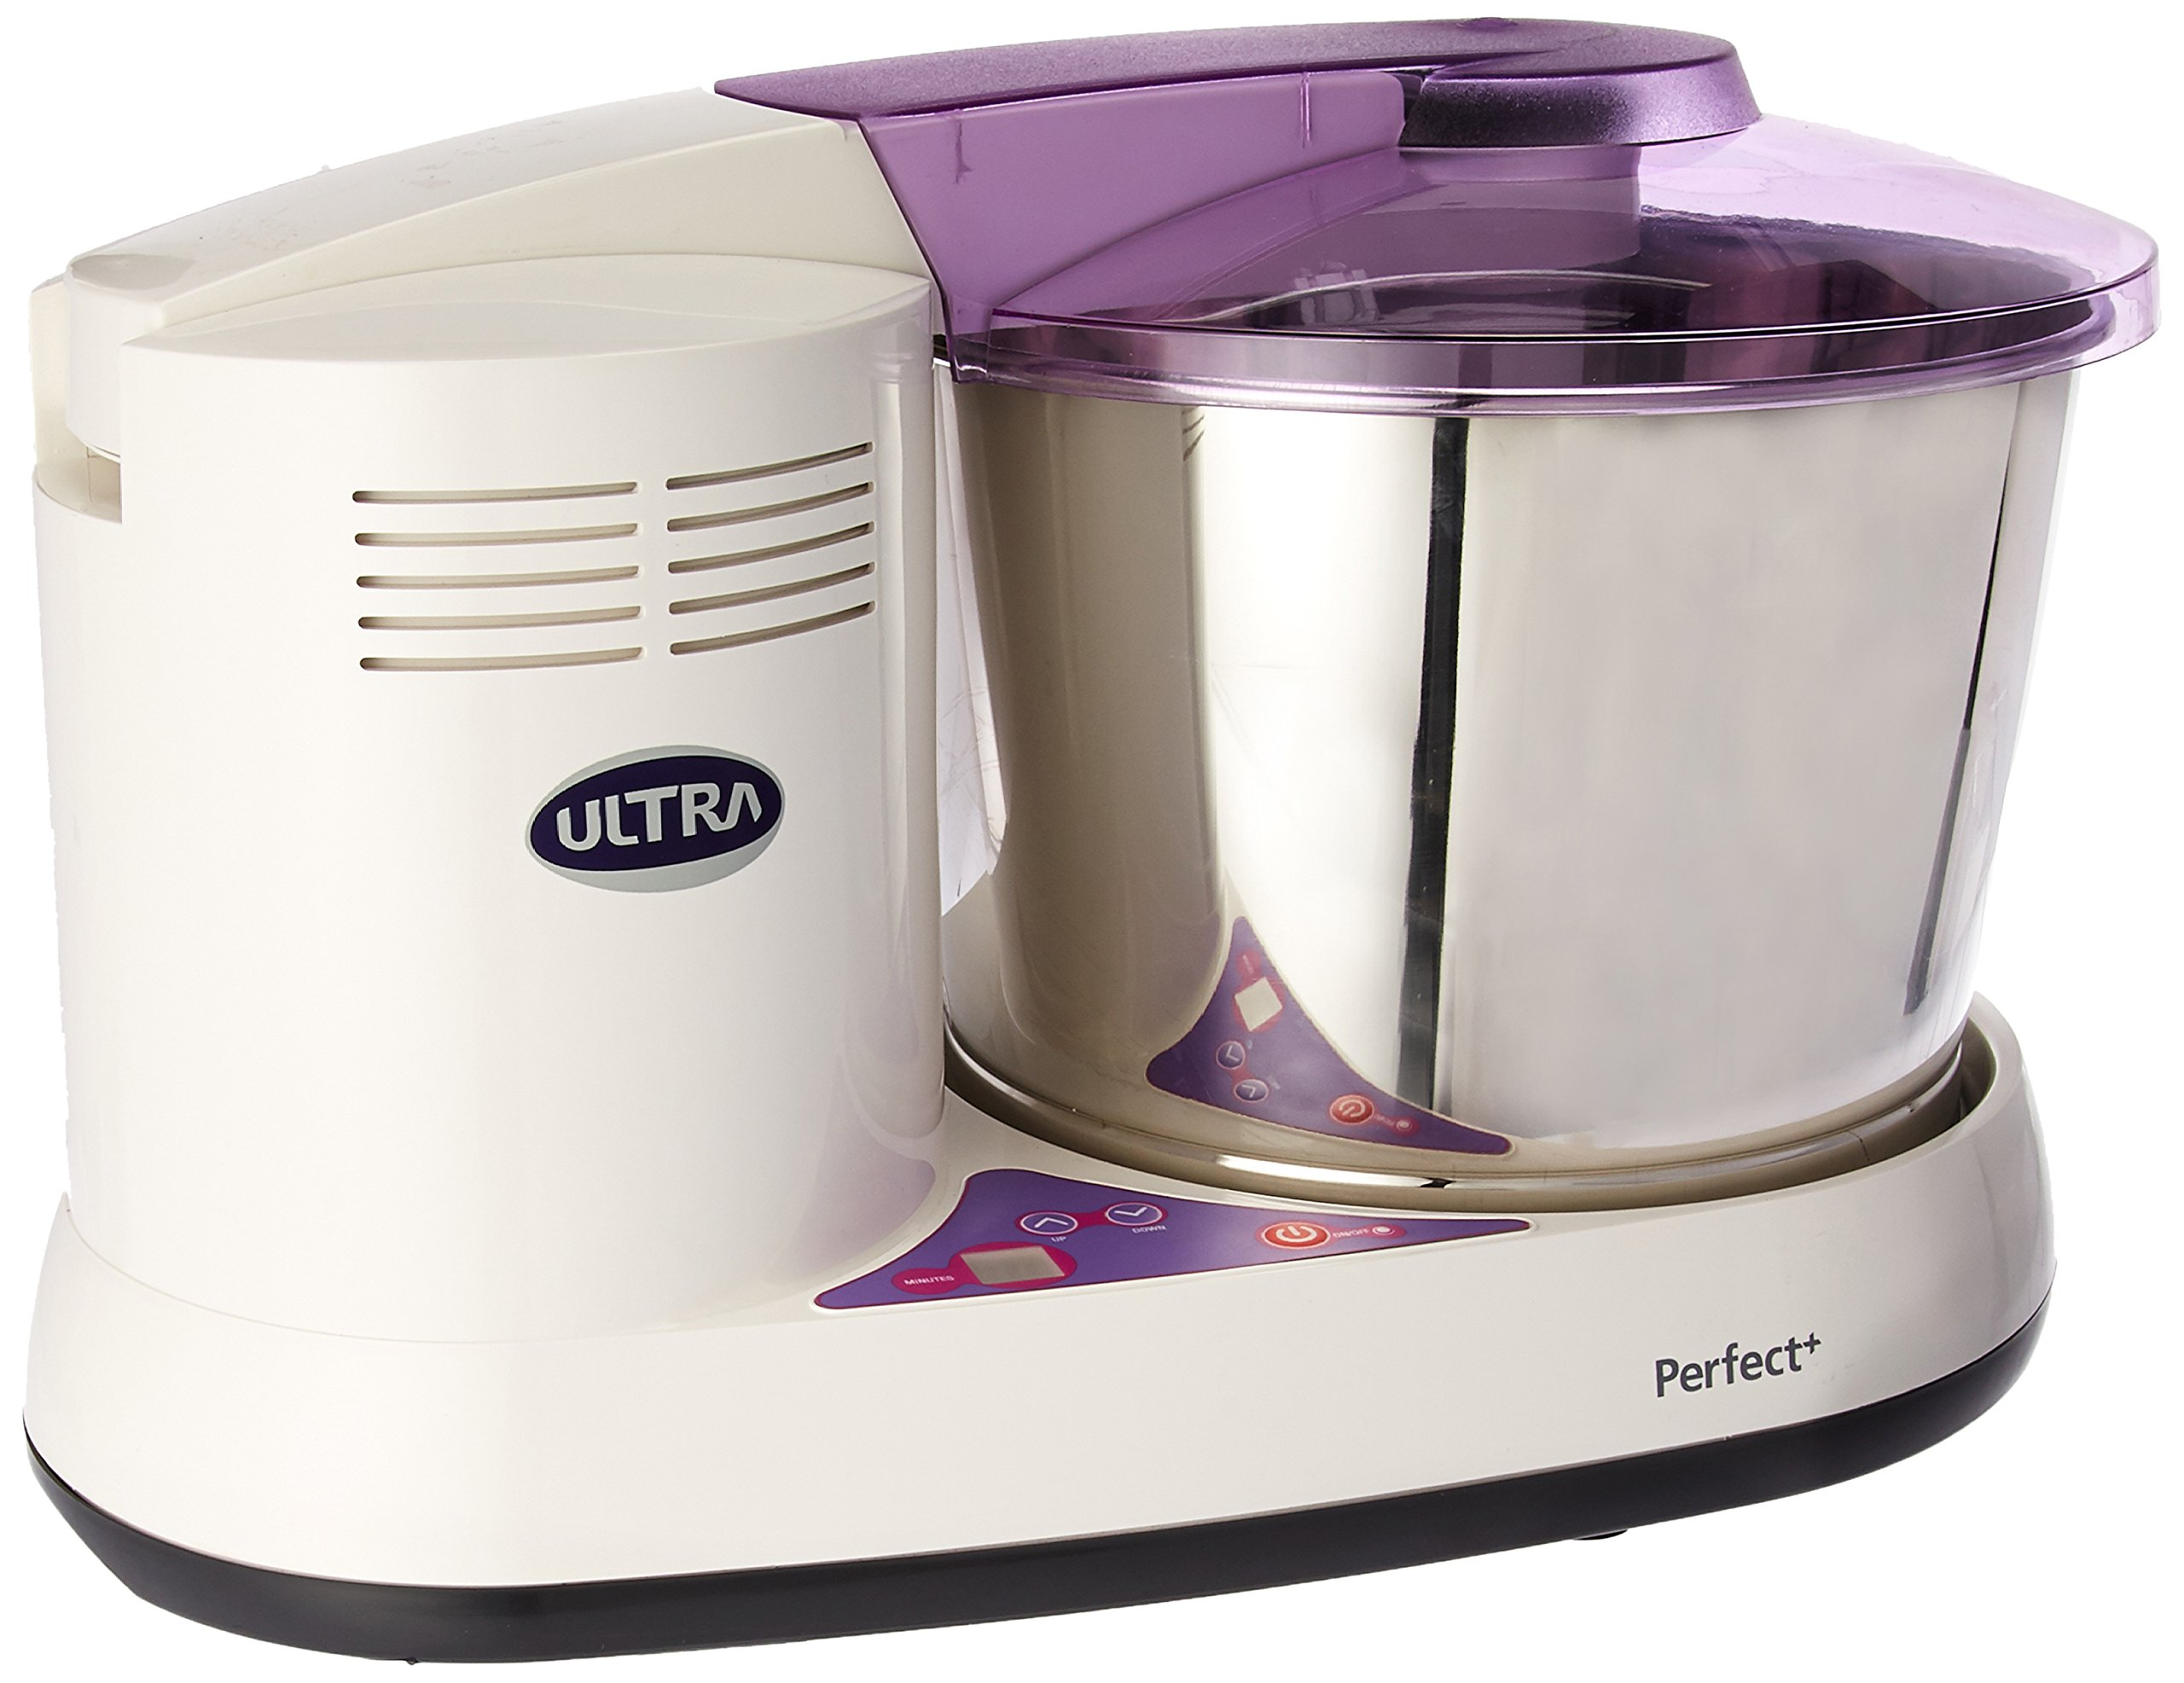 Ultra Perfect+ Table Top 2 Liter Wet Grinder with Atta Kneader & Digital Timer, 110V by ULTRA